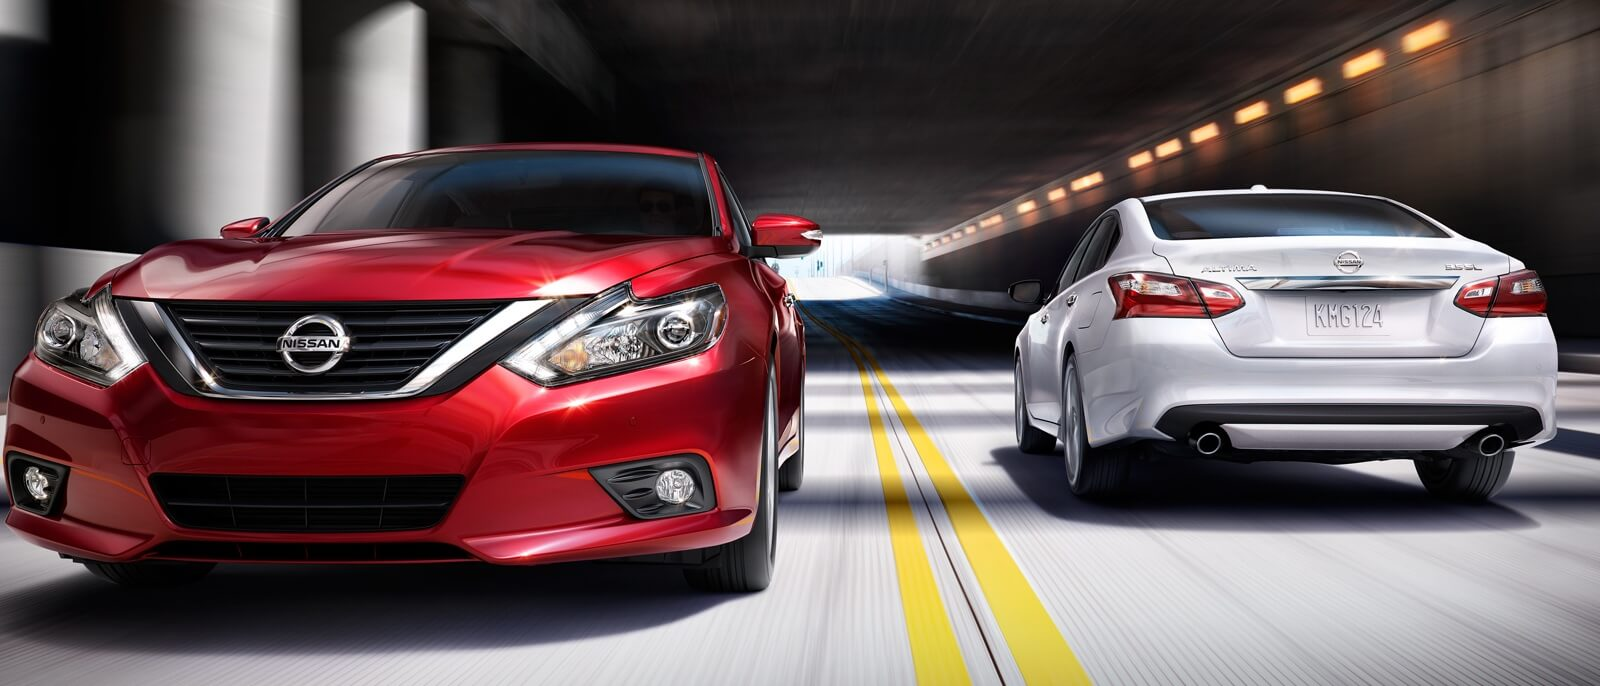 2016 Nissan Altima models on display